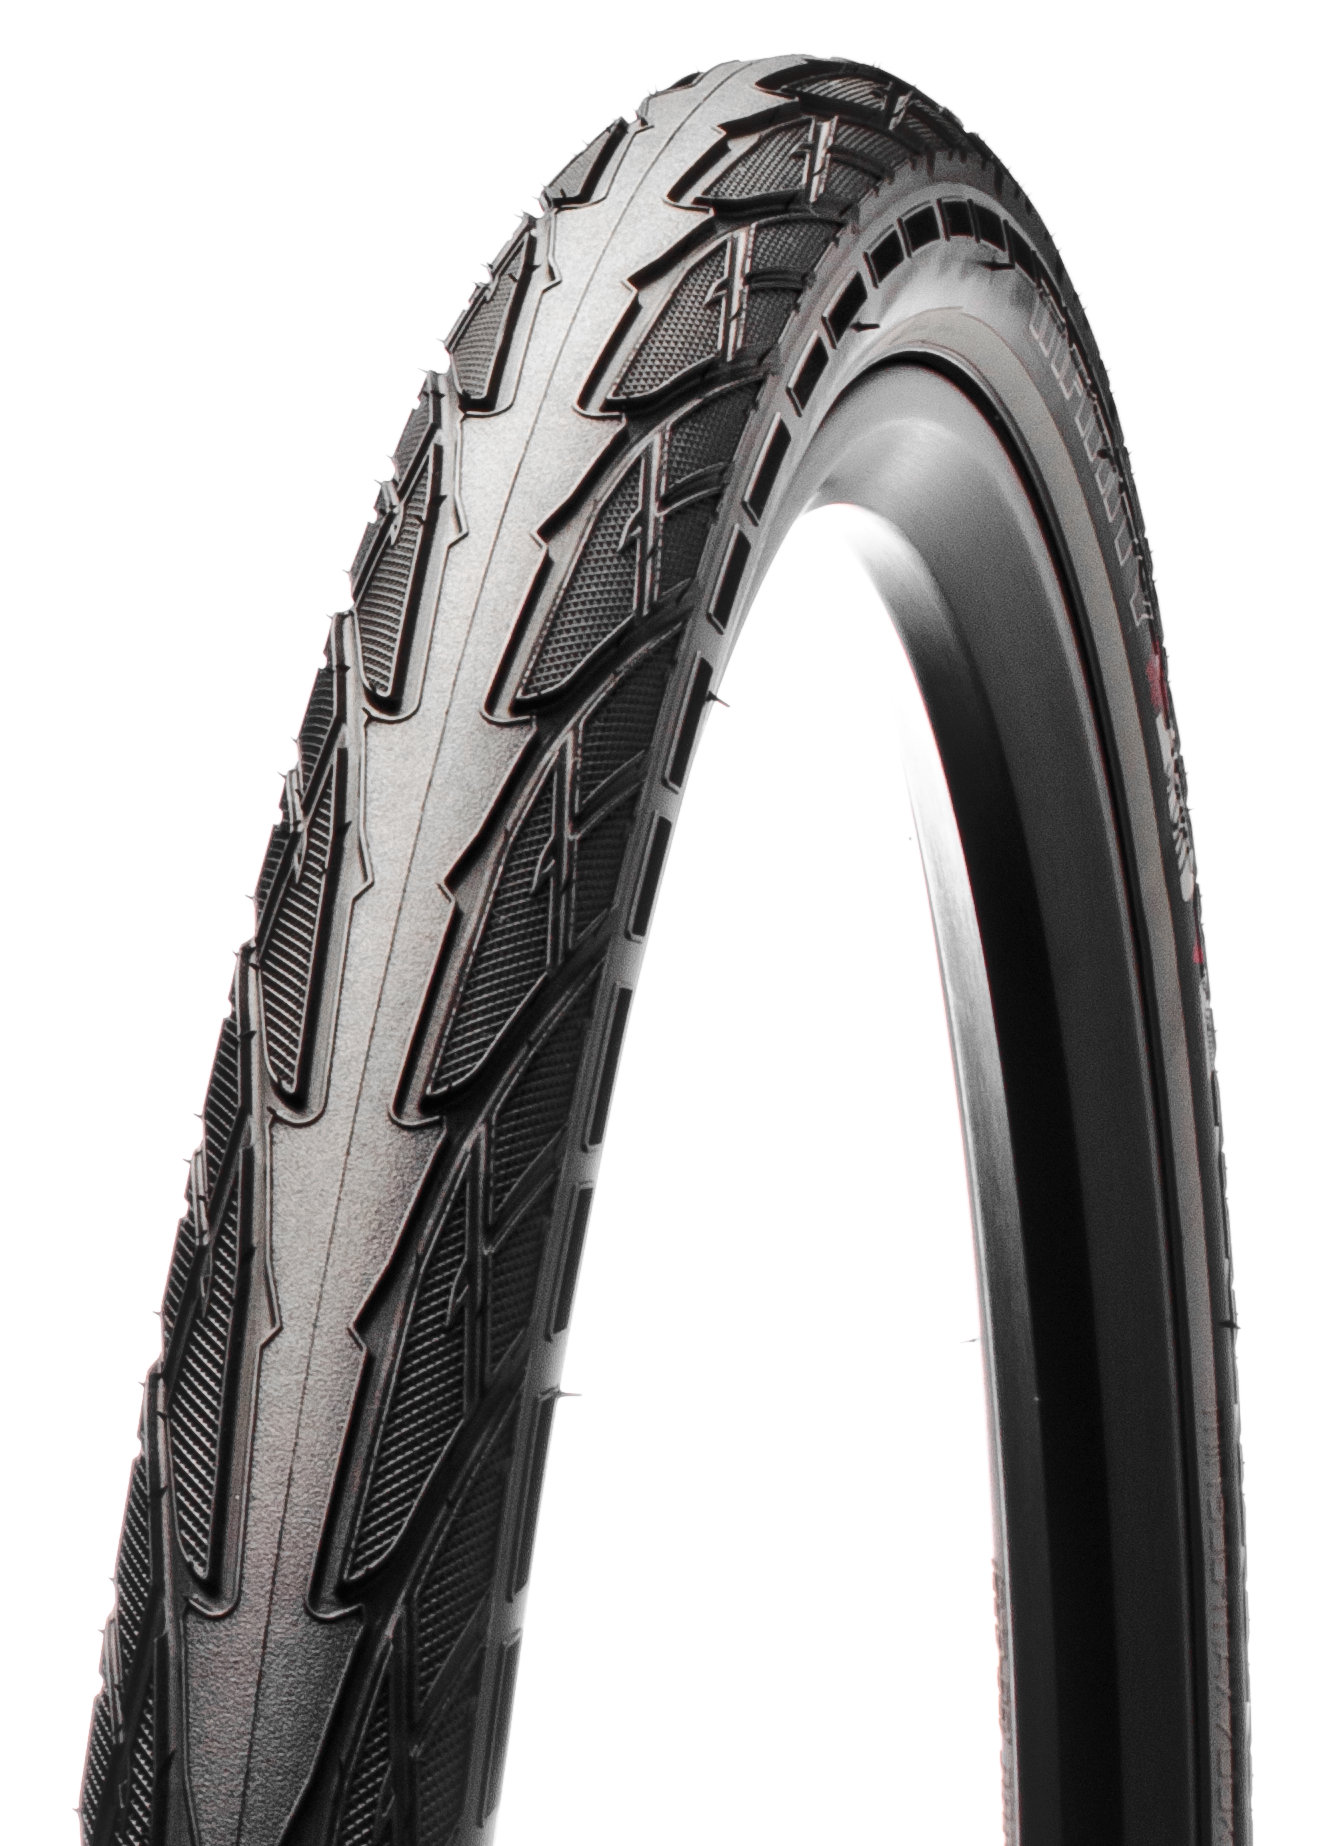 SPECIALIZED INFINITY TIRE 700X38C - SPECIALIZED INFINITY TIRE 700X38C